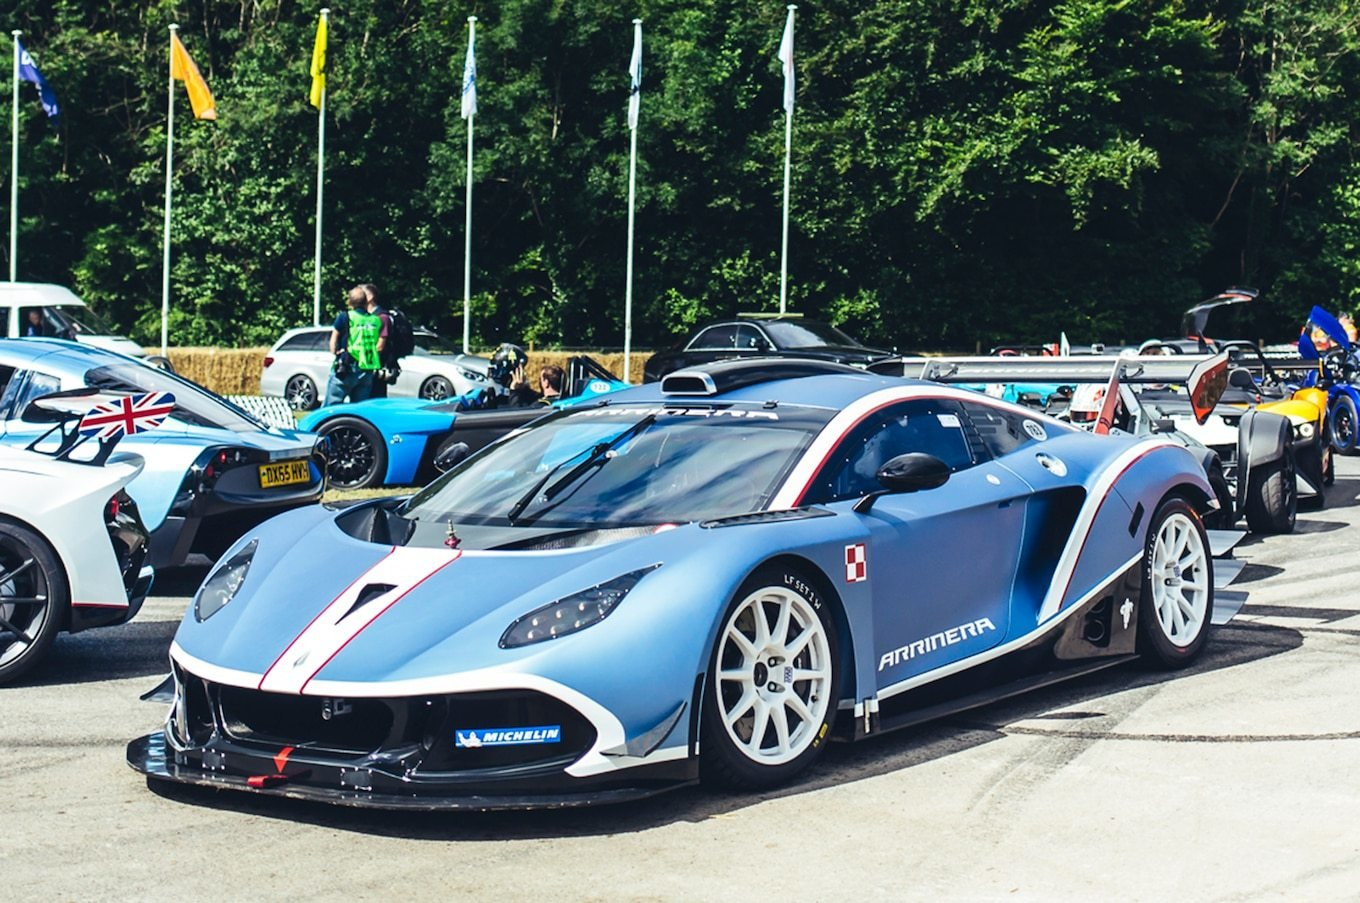 New Arrinera Hussarya Gt Is First Polish Car To Enter Goodwood On This Month